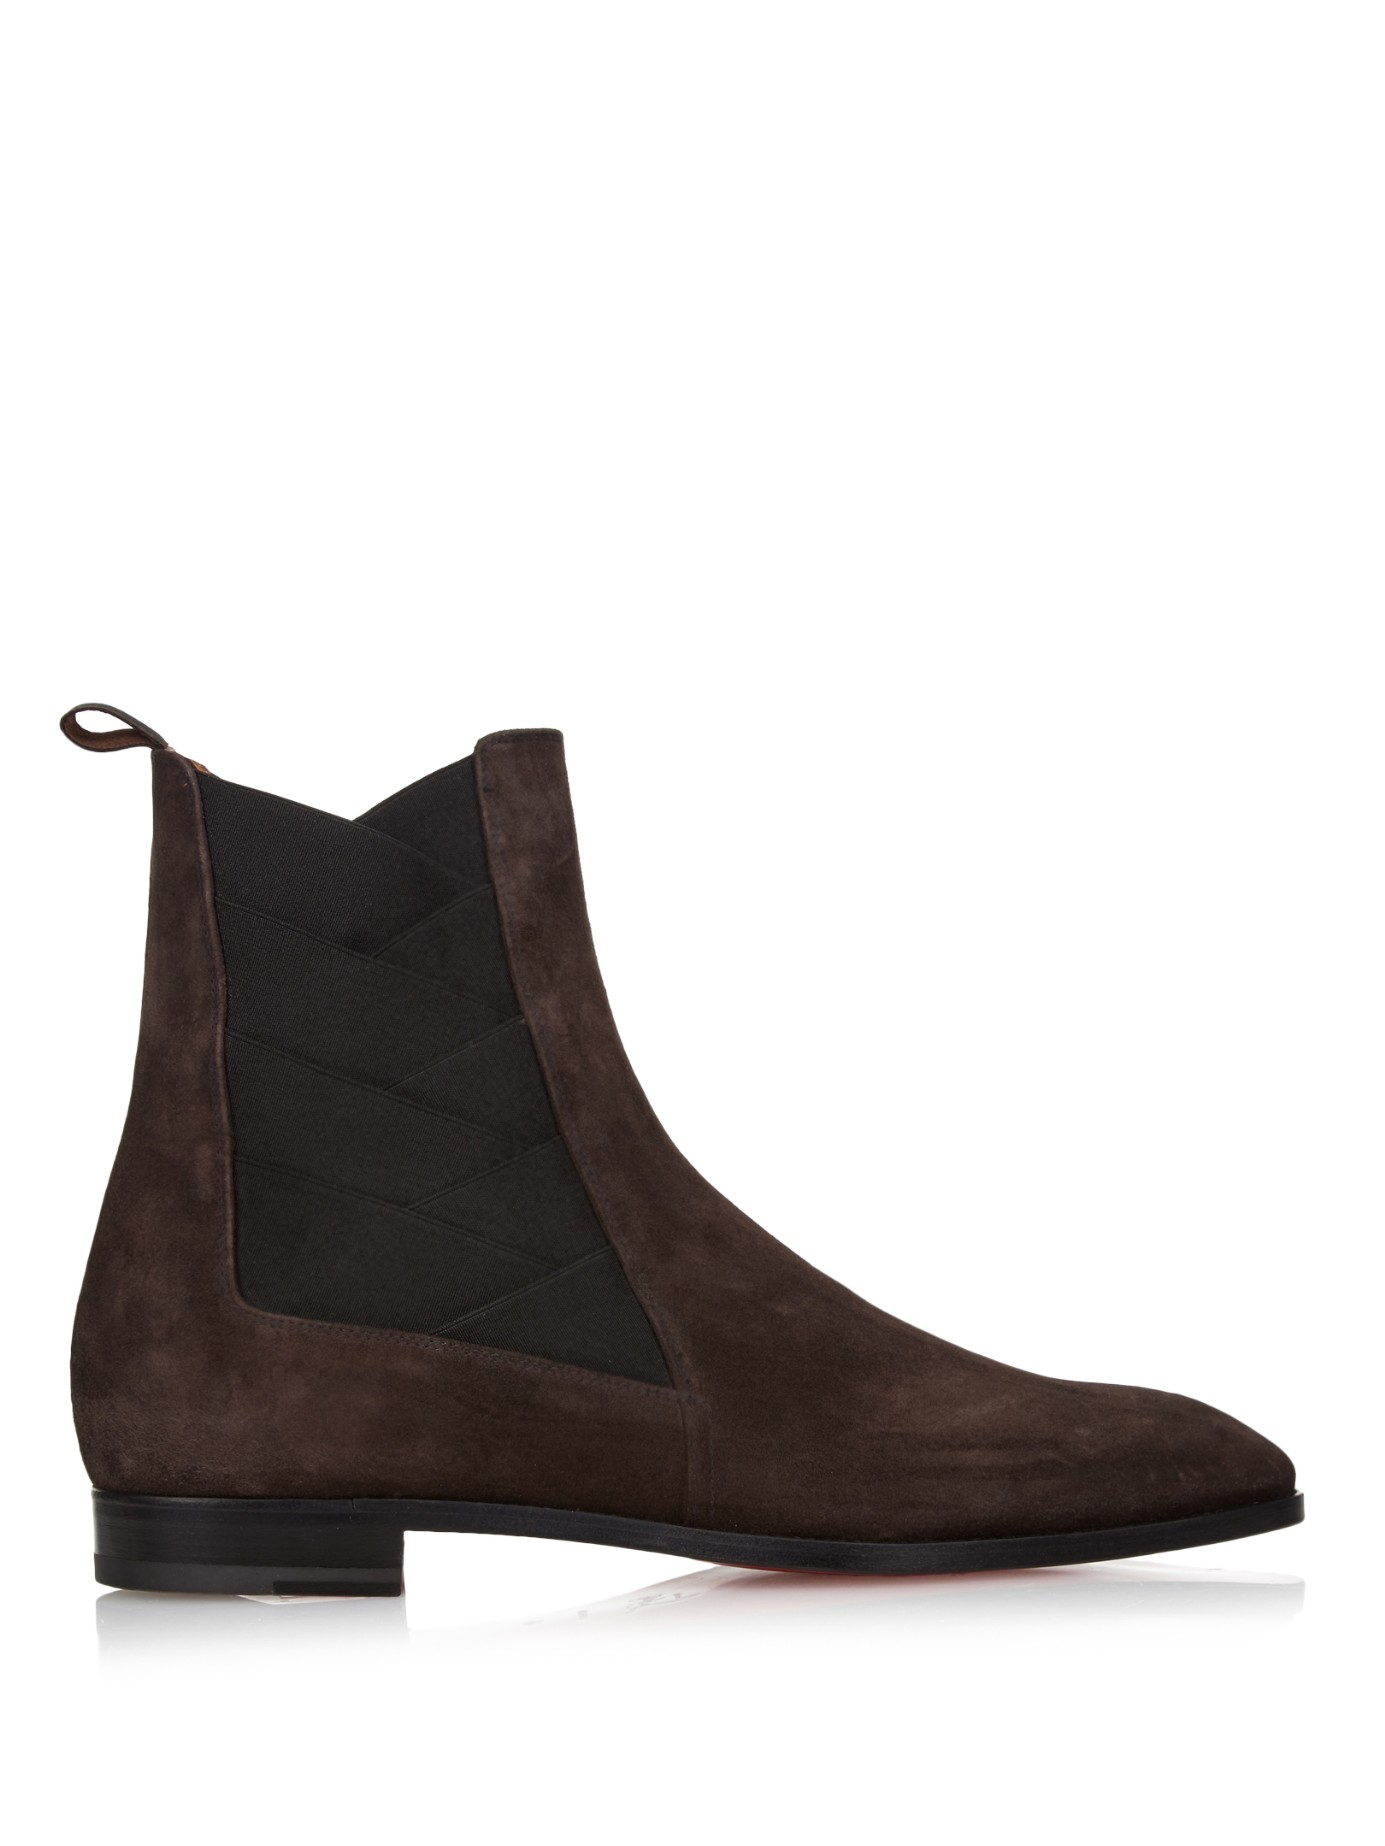 christian louboutin brian suede ankle boots in brown for